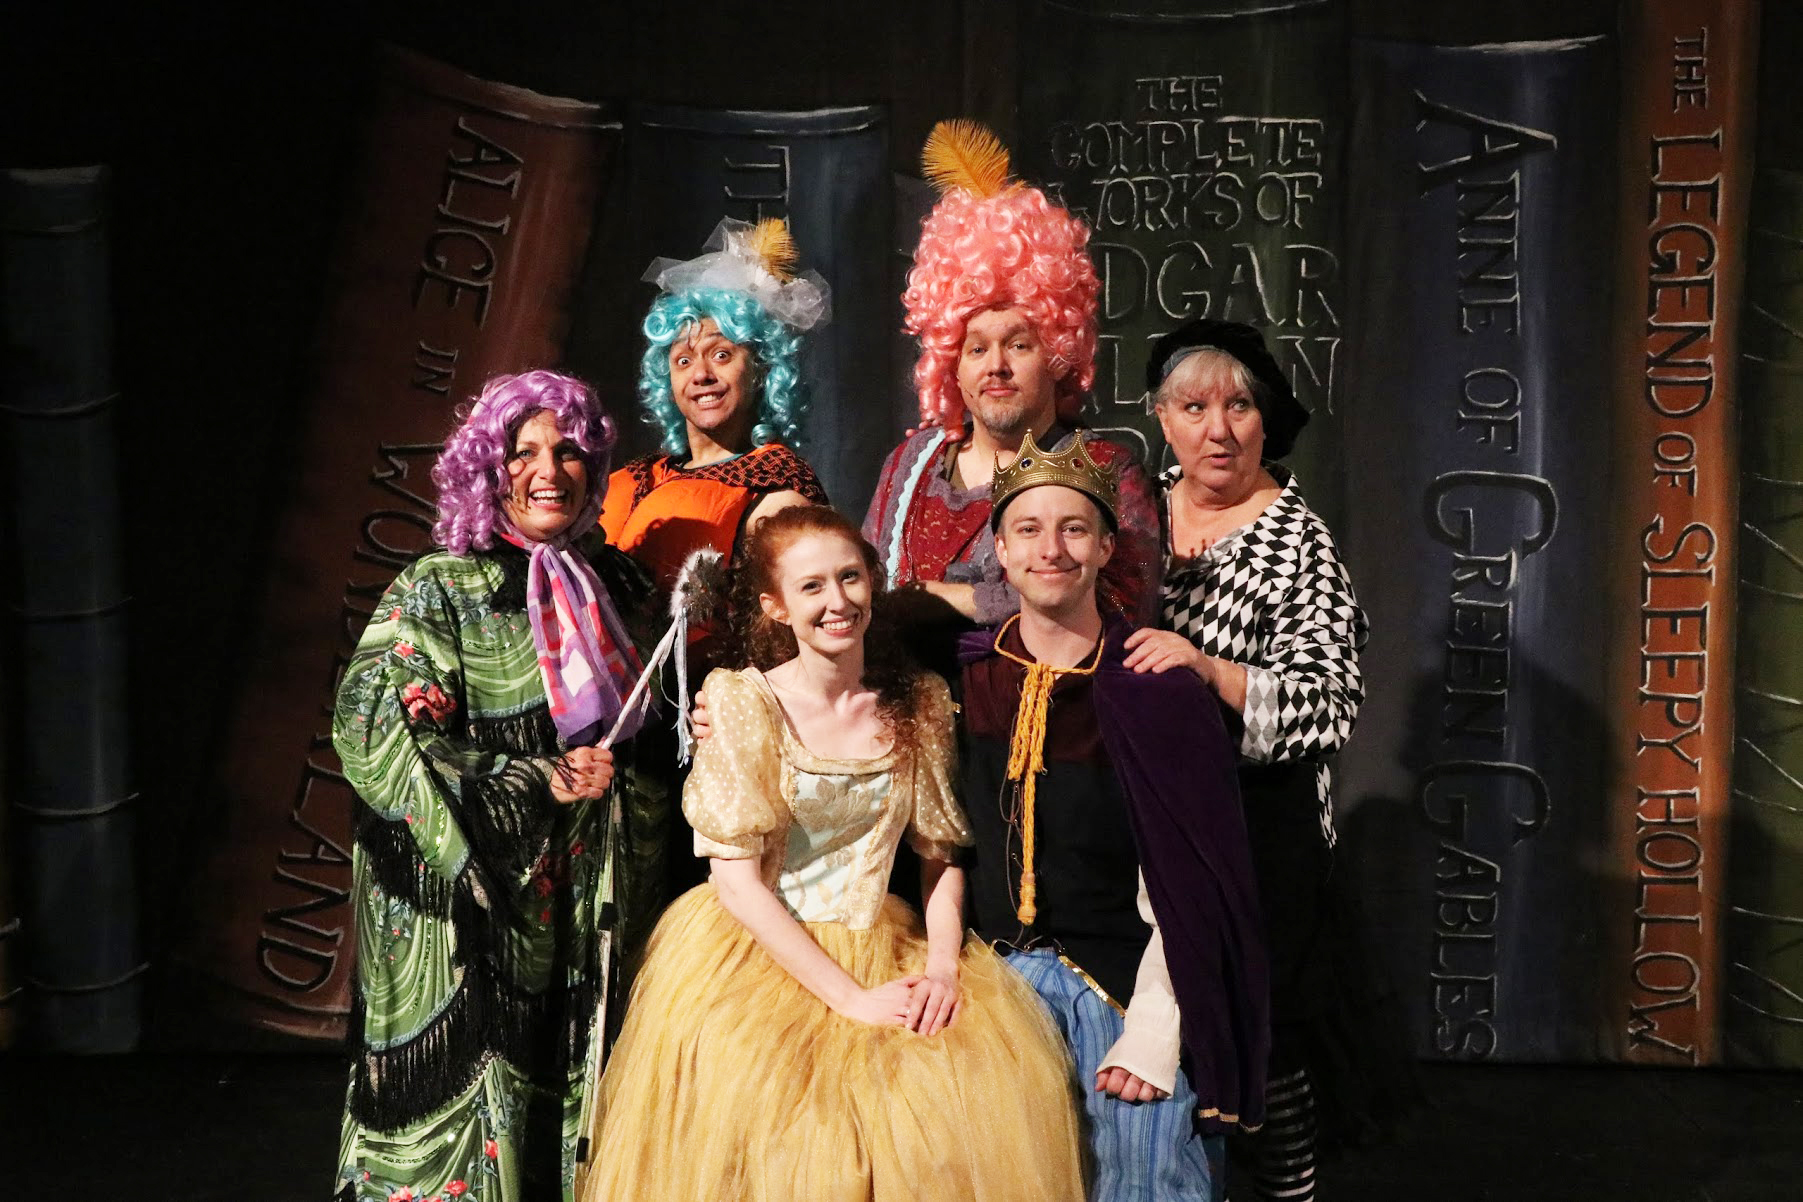 See The Commedia Cinderella!